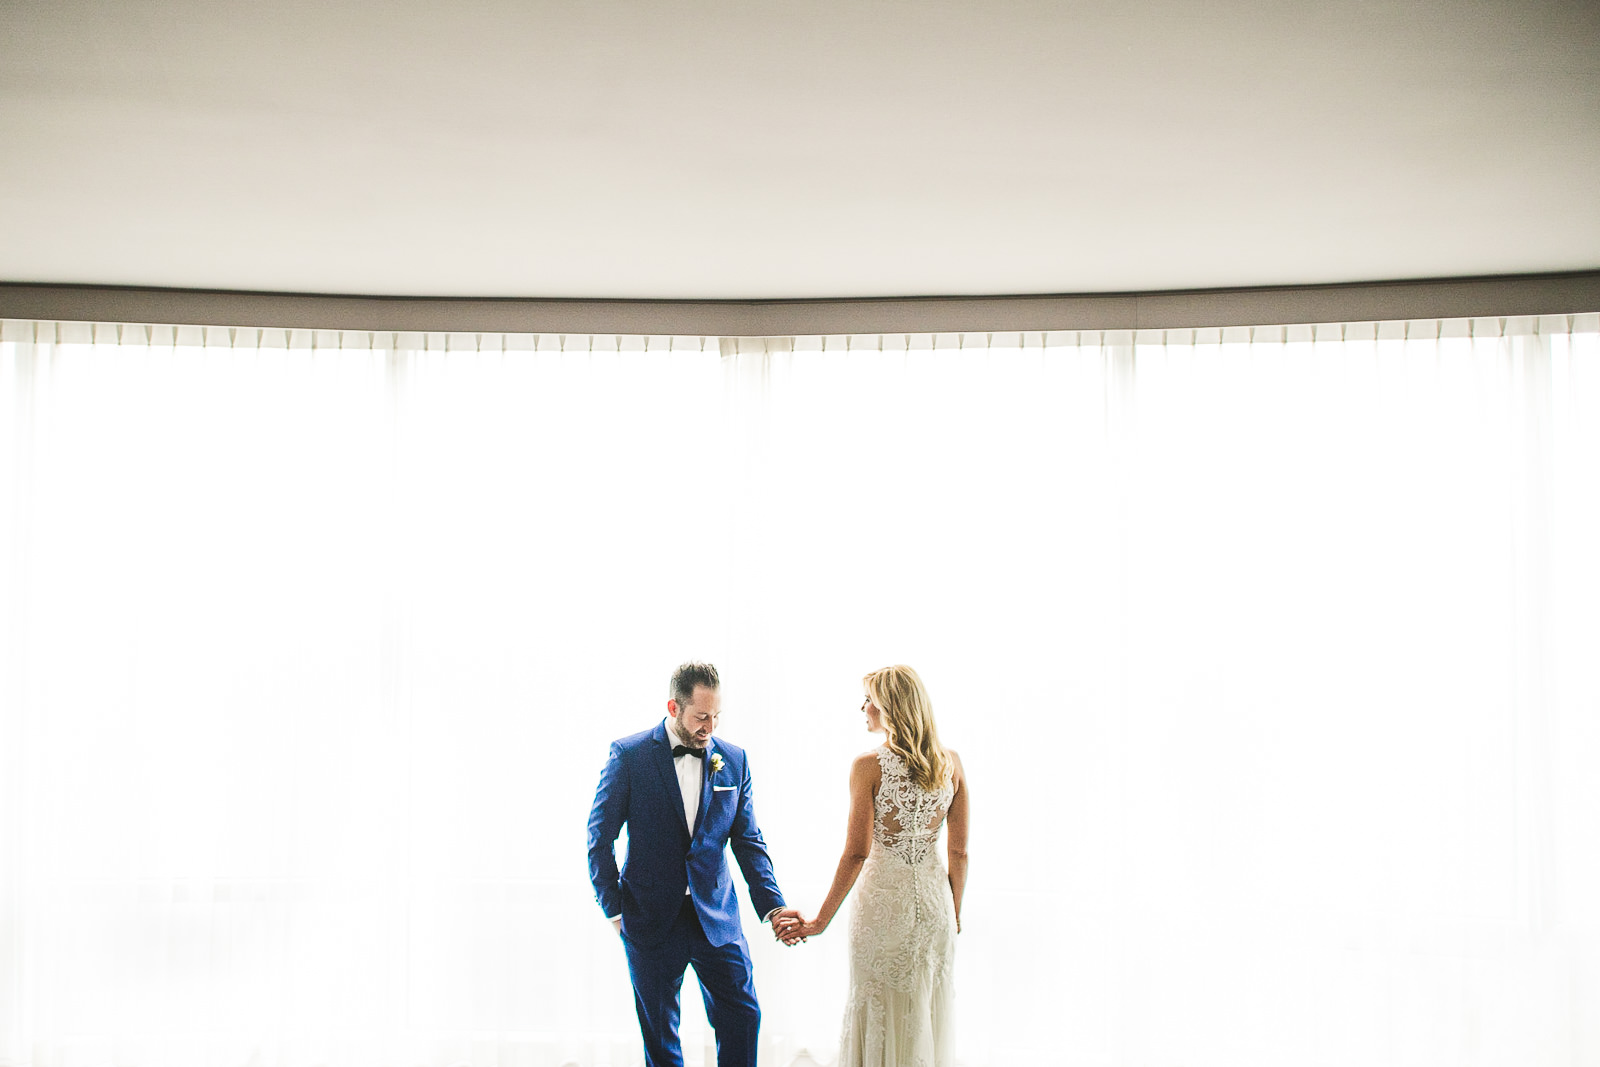 23 chicago wedding photographers - Chicago Wedding Photography at Gallery 1028 // Courtnie + David